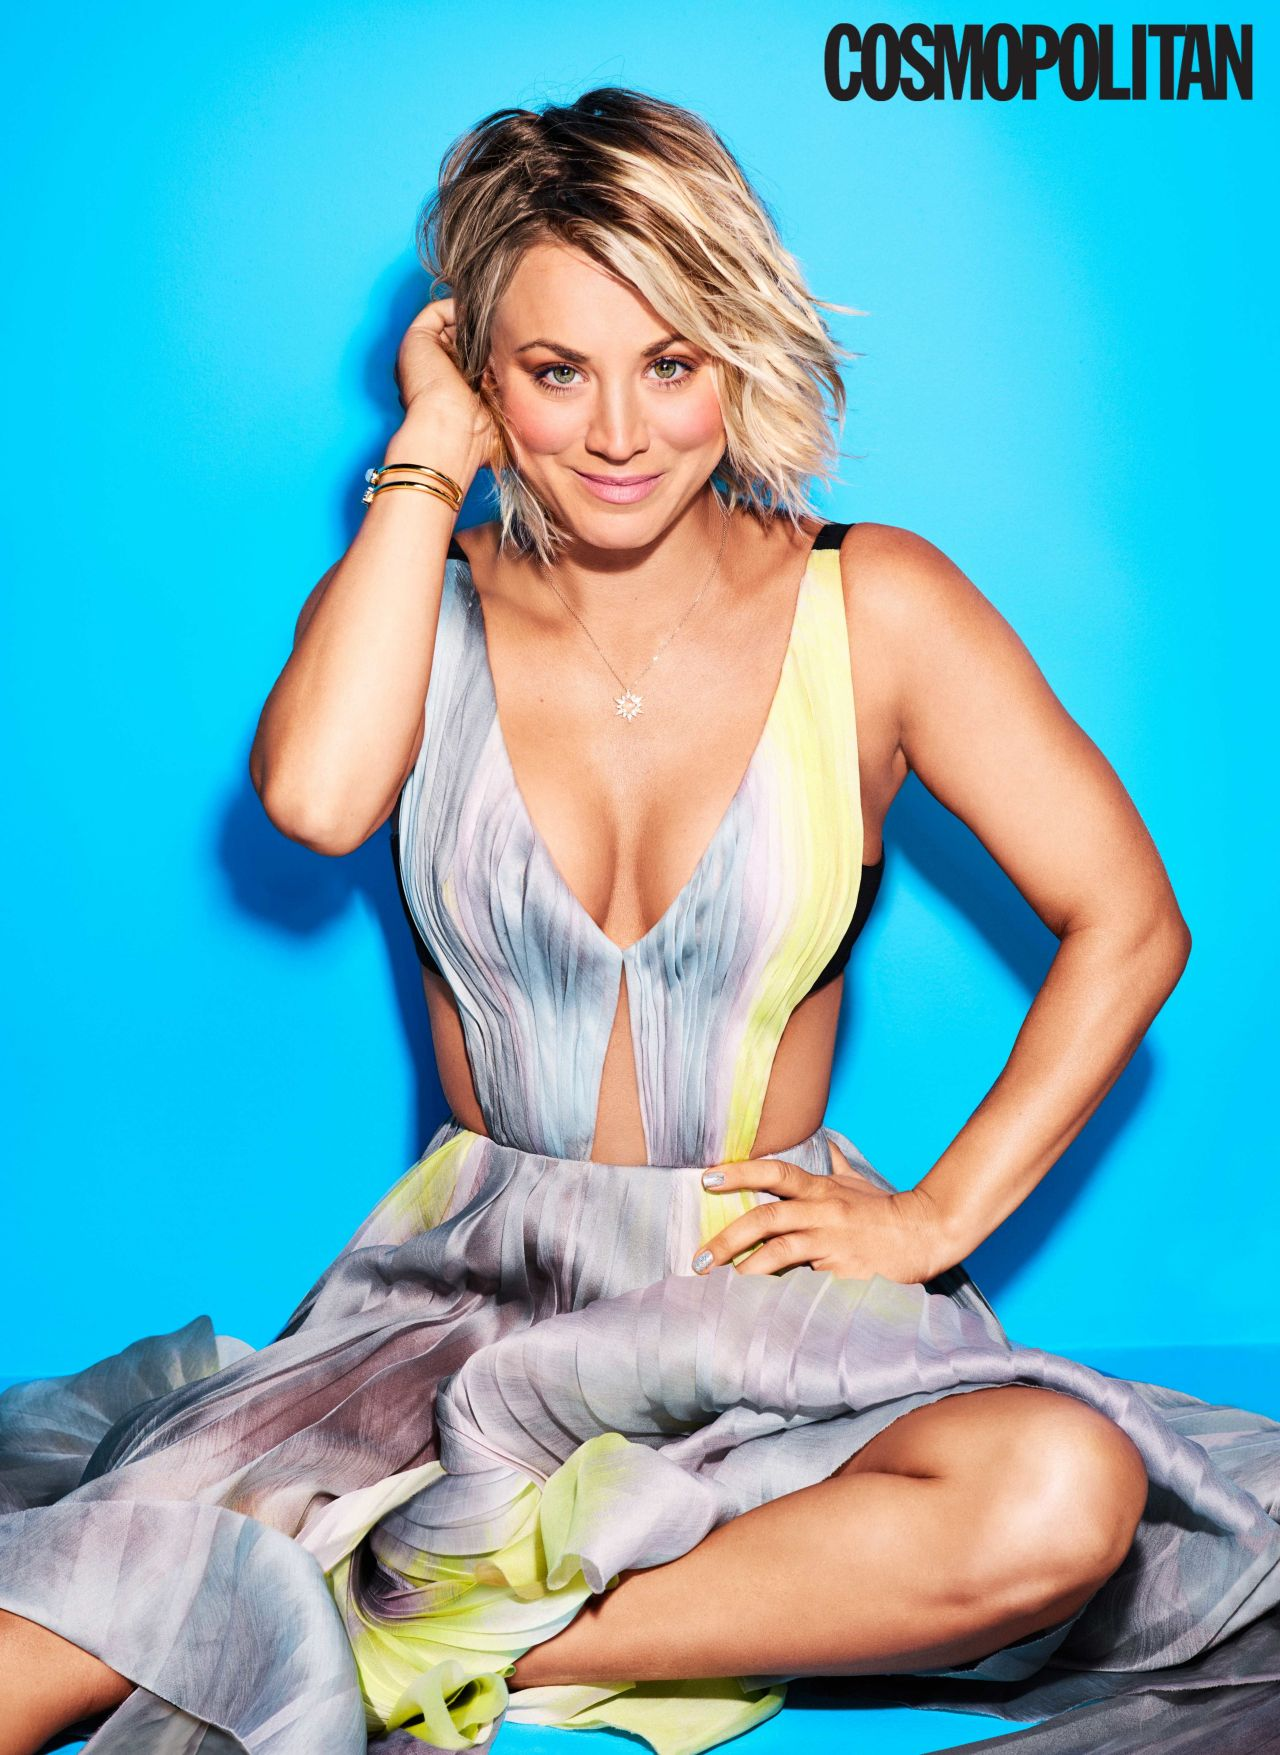 Kaley Cuoco Cosmopolitan Magazine Cover April 2016